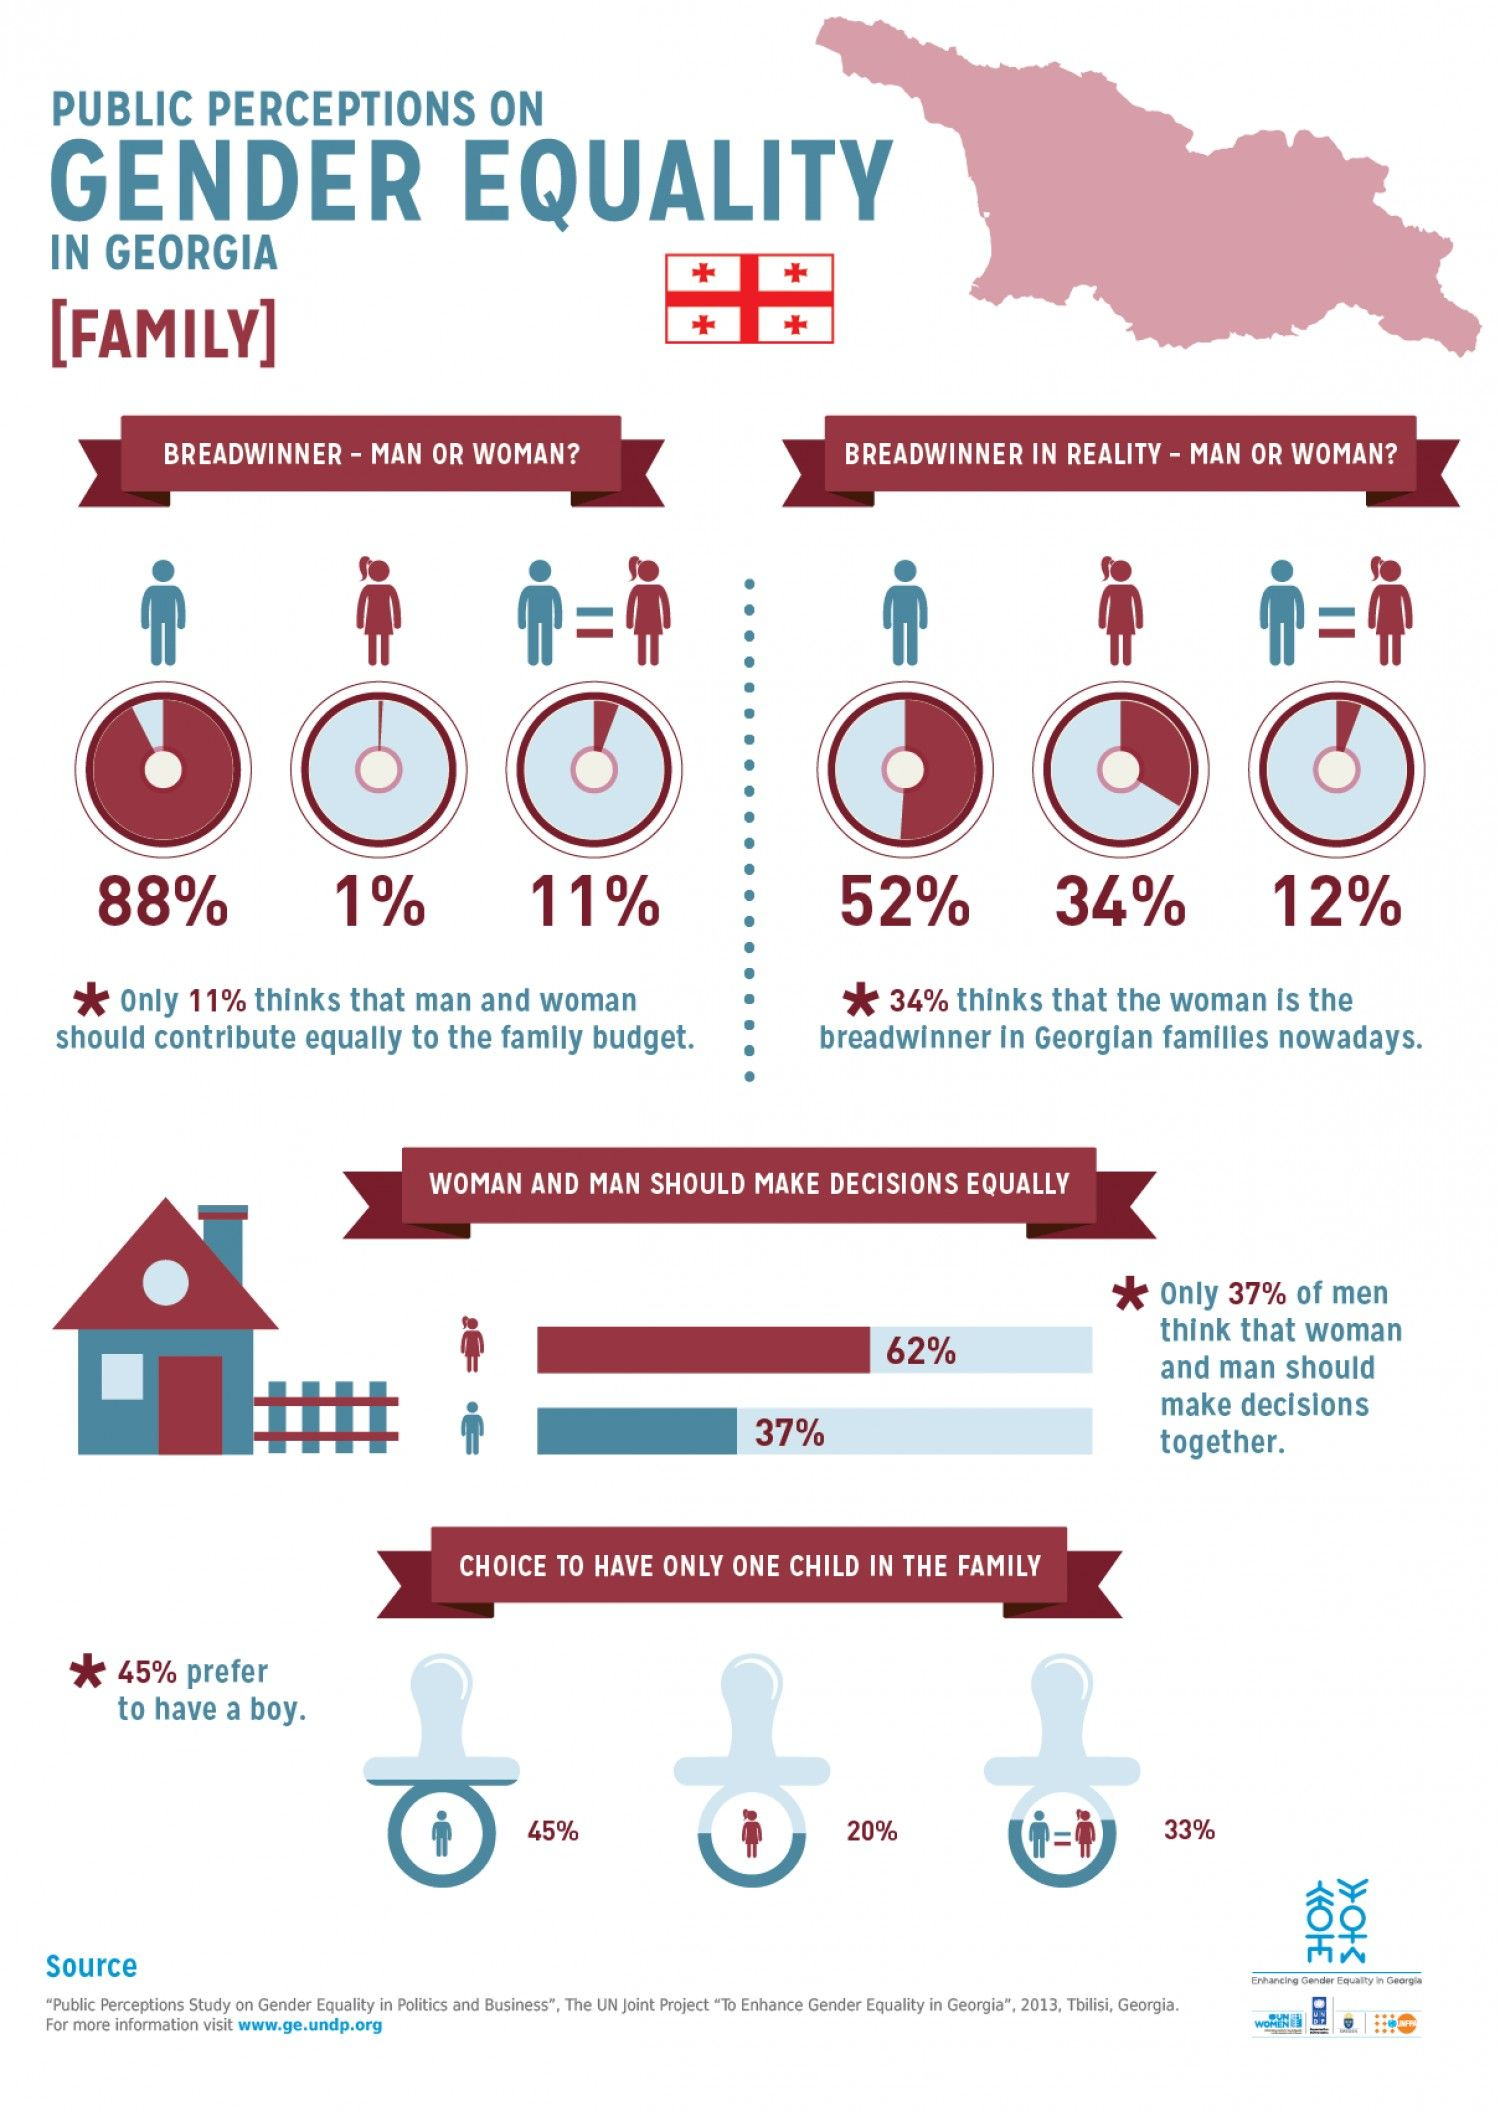 Public Perceptions On Gender Equality In Georgia Family Infographic Infographic Perception Gender Equality